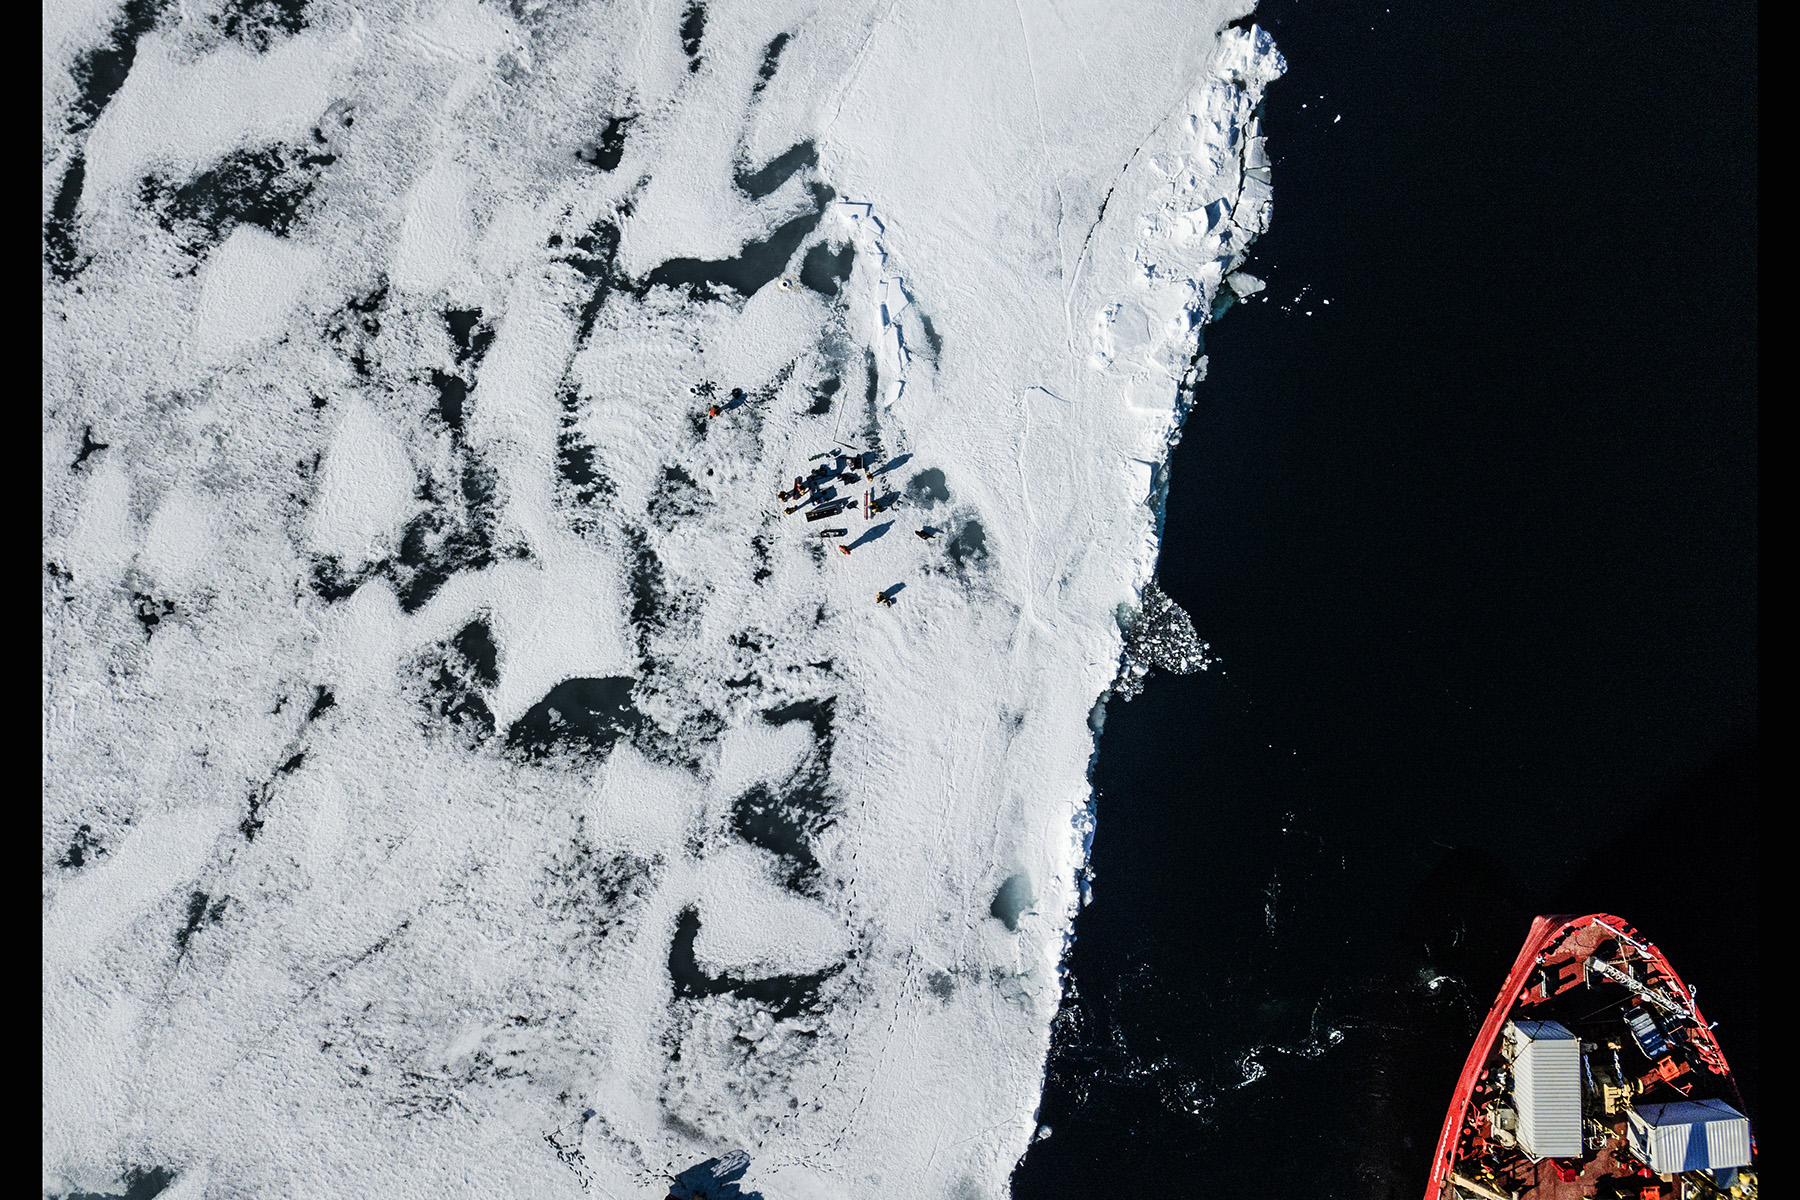 Canada, Nunavut, Kangiqsualuk Ilua (Hudson Bay), June 2018